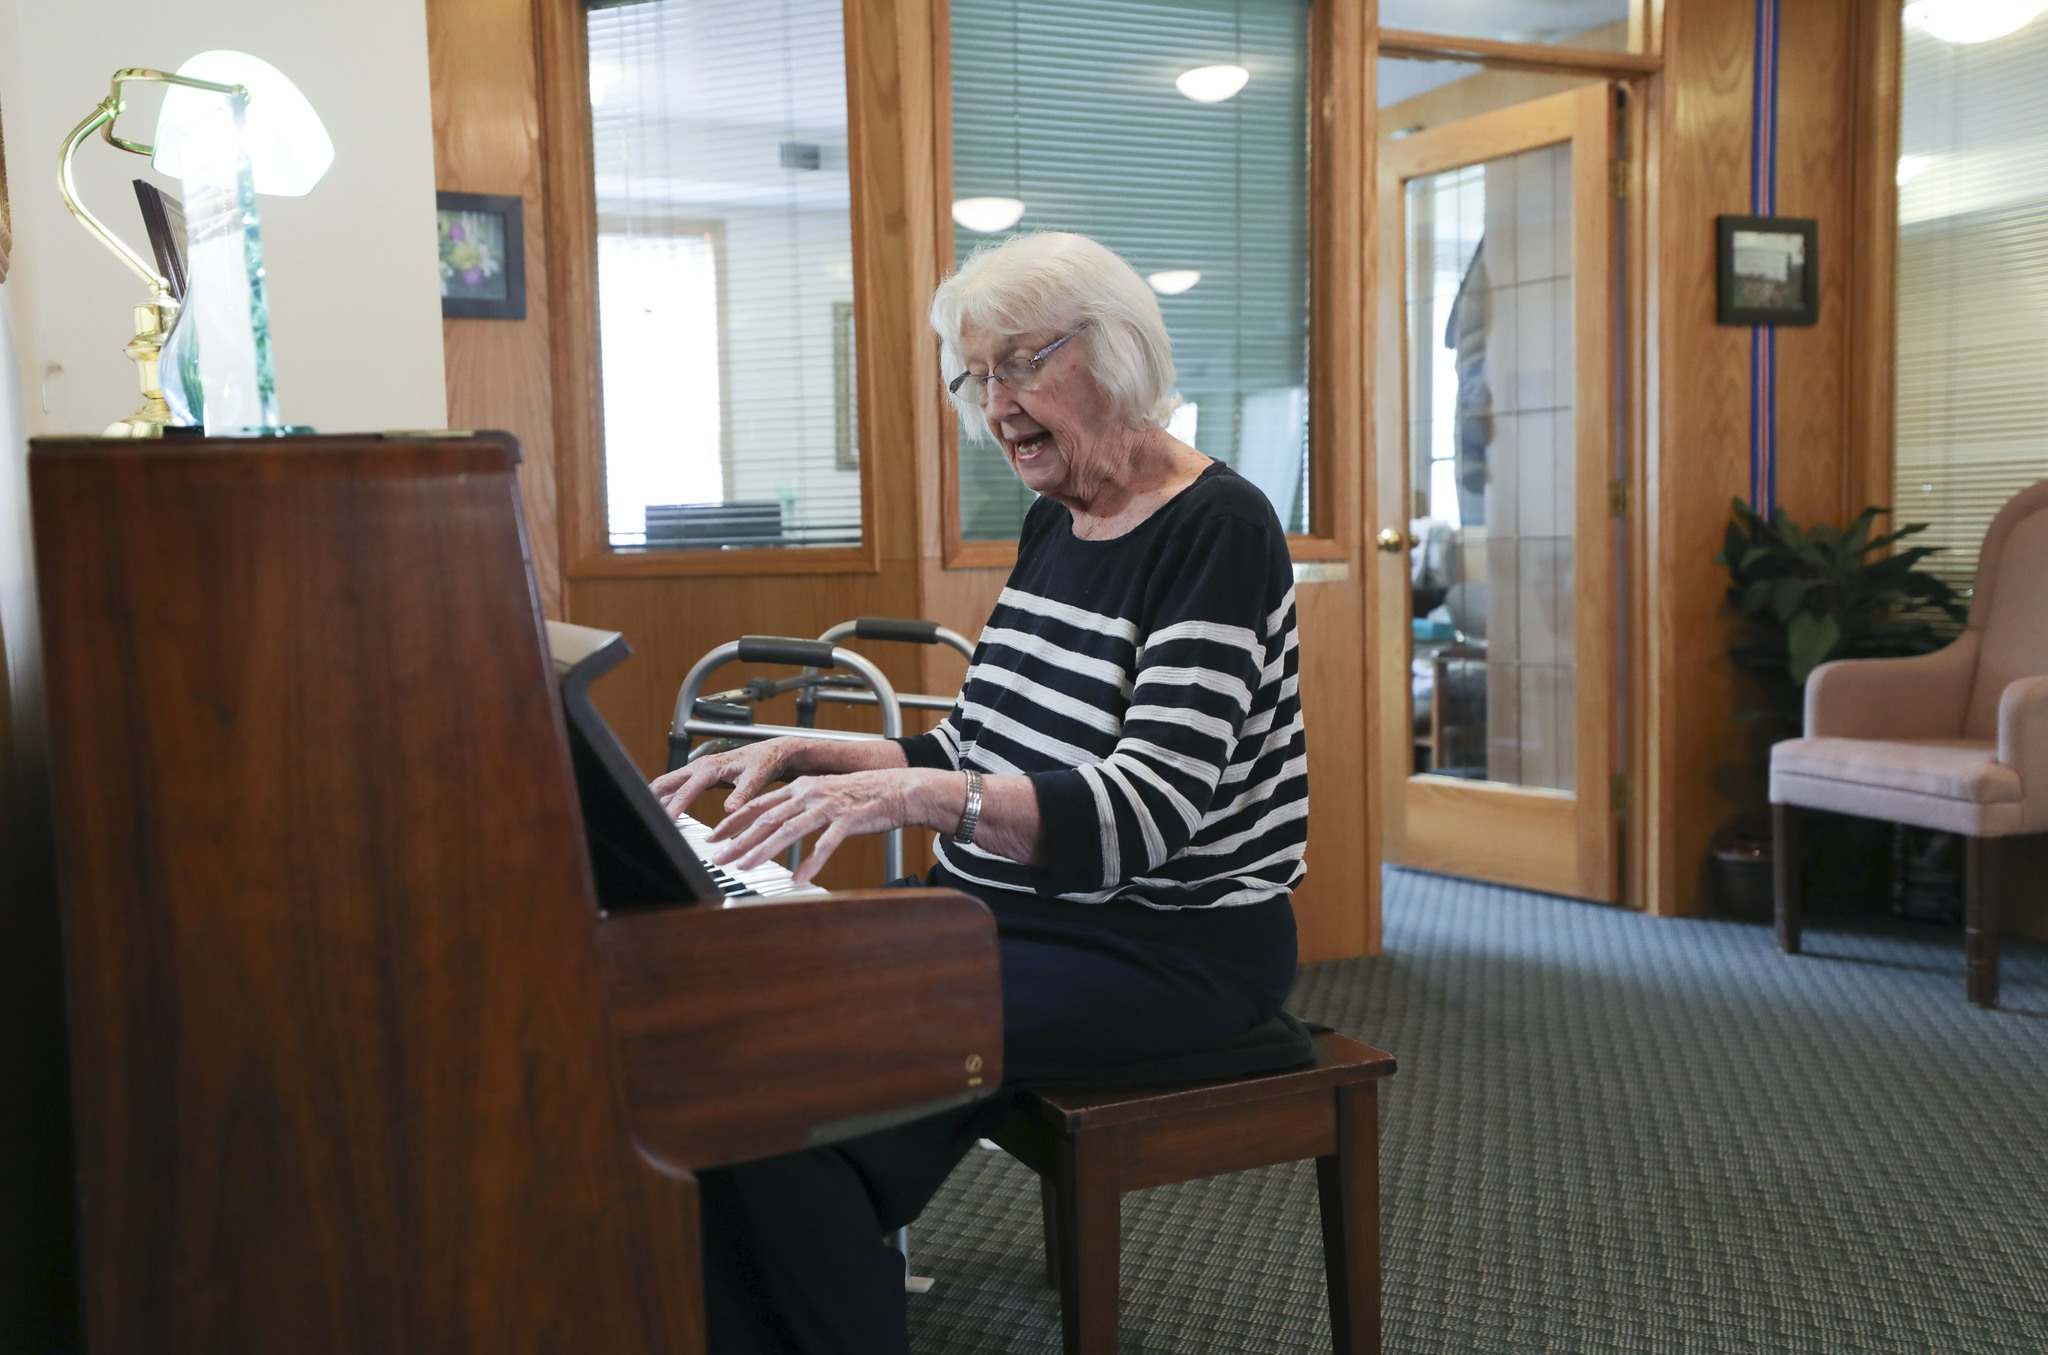 Joan Guttormisson plays the piano for guests at centre.